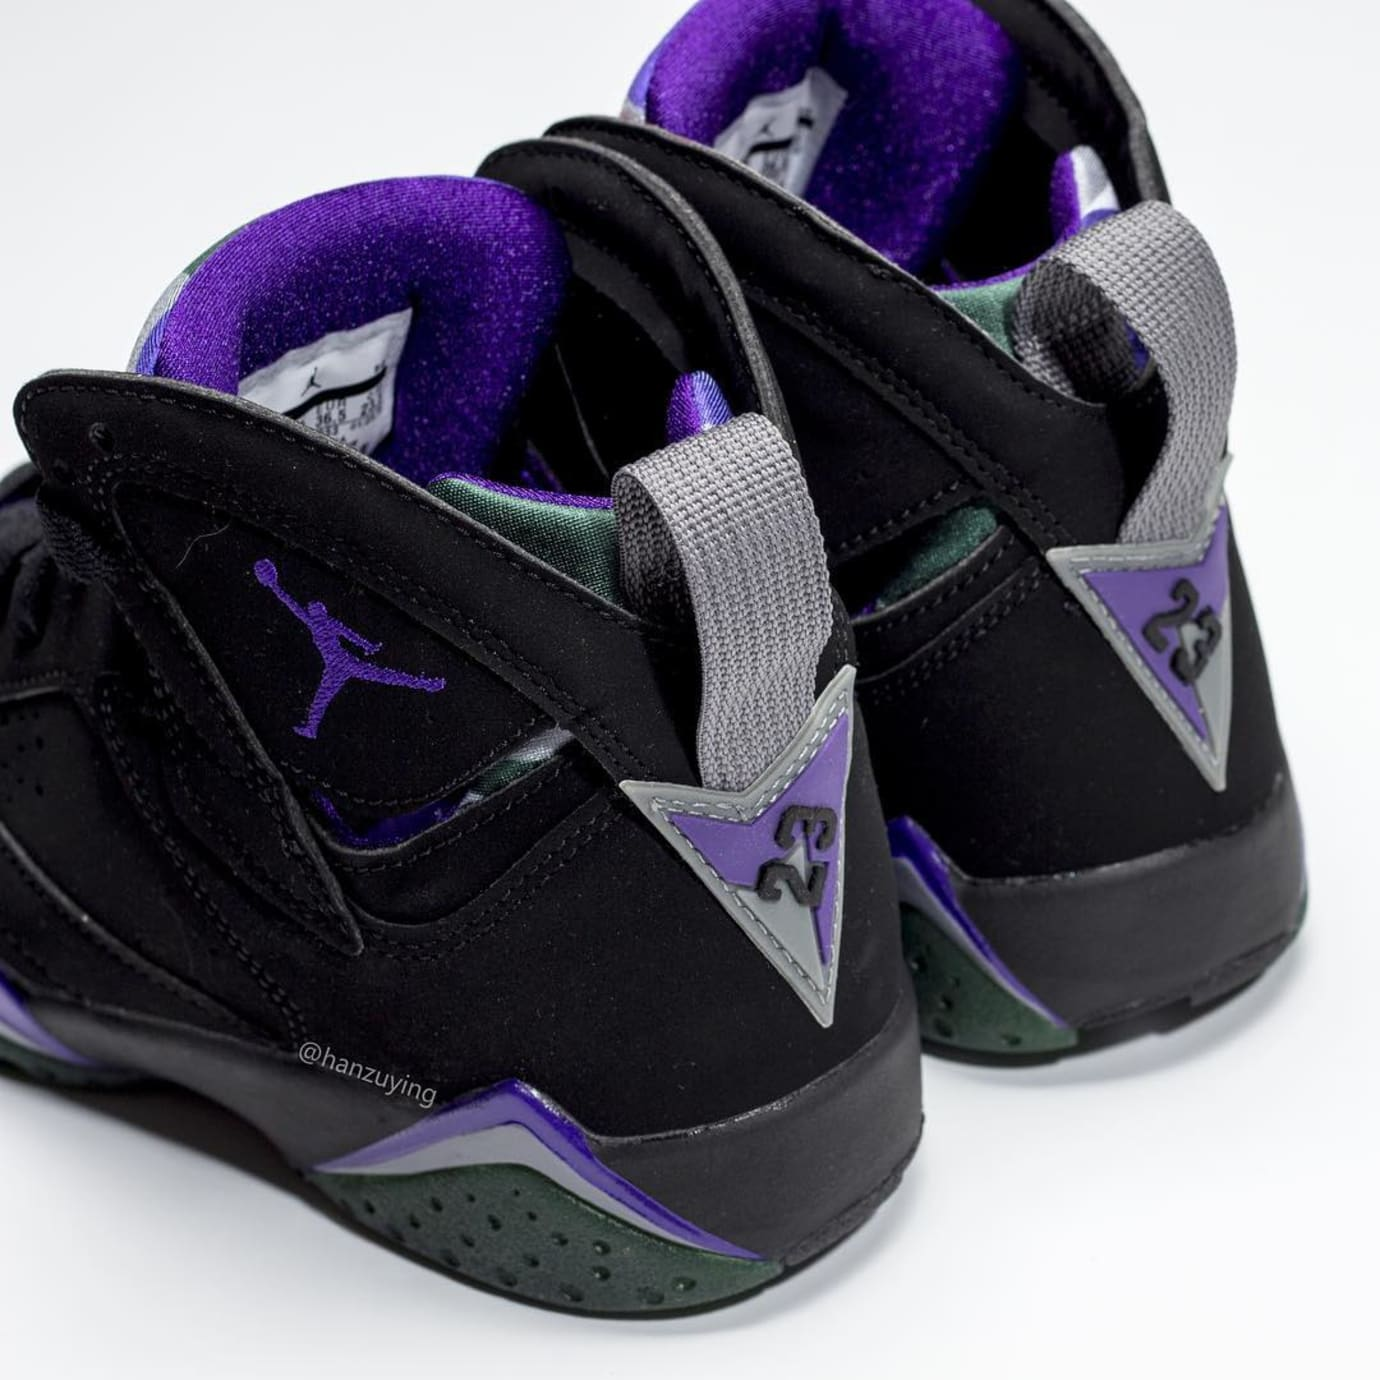 check out b06c4 71d0f Image via hanzuying · Air Jordan 7  Ray Allen PE  304775-053 3